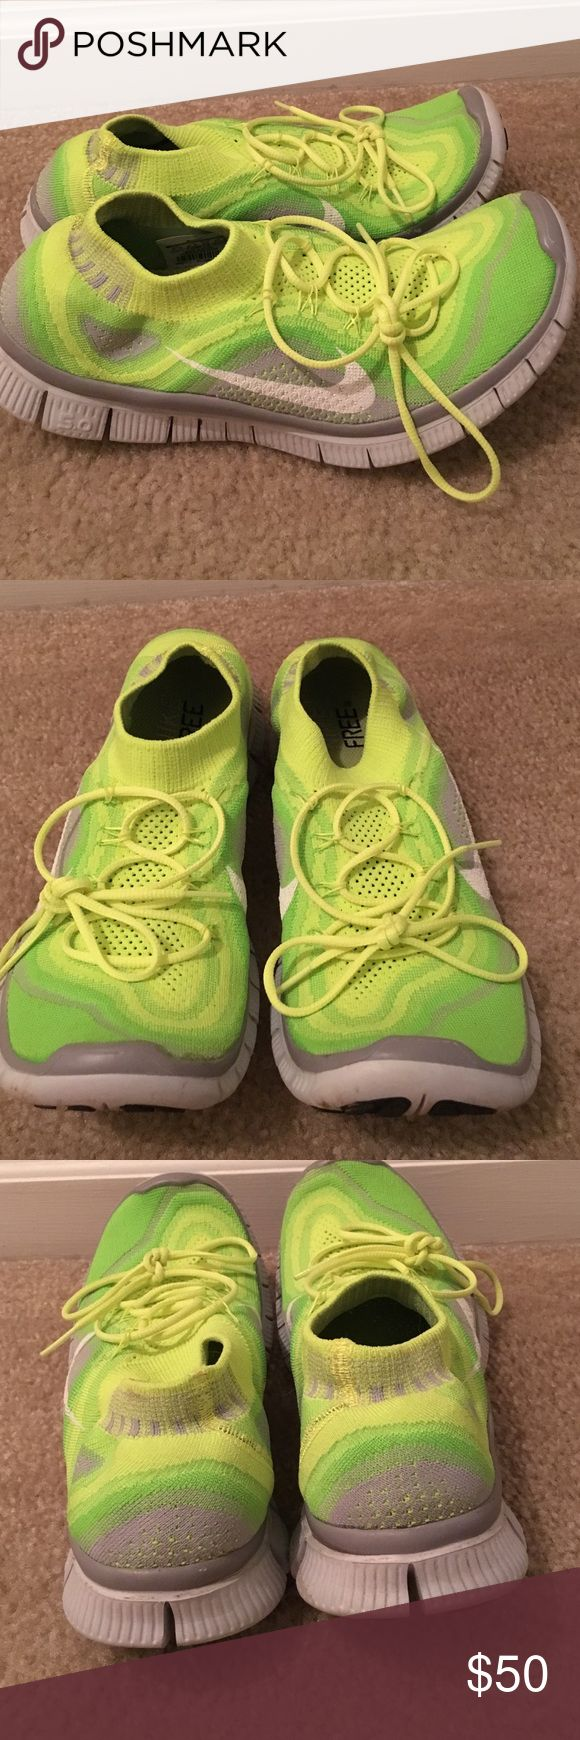 Neon yellow Nike free 5.0 Nike free 5.0 neon yellow shoes. Size 9.5 Nike Shoes Athletic Shoes